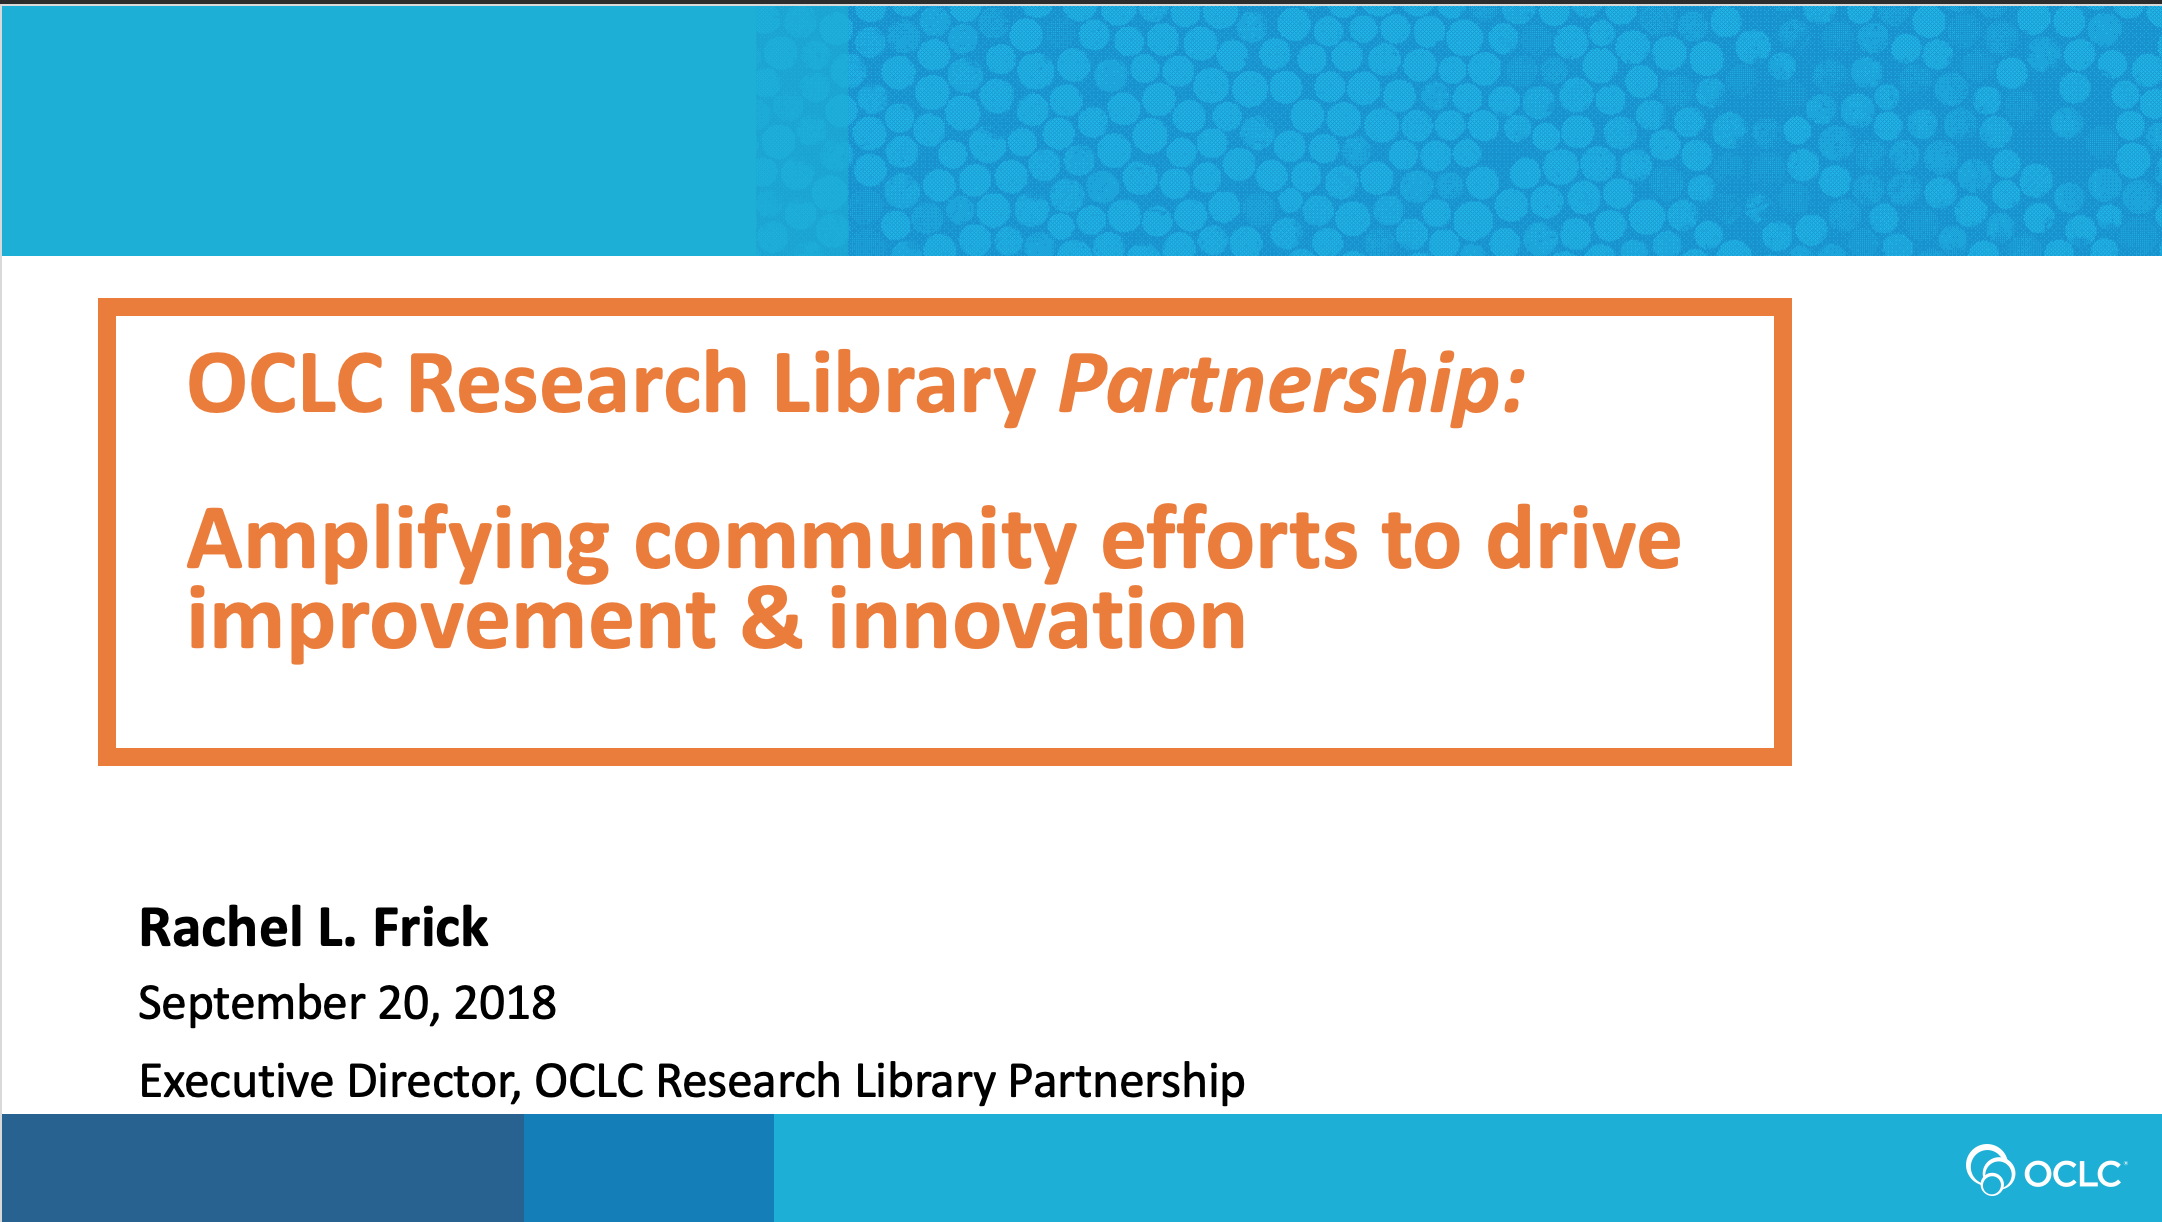 OCLC Research Library Partnership Update from the Executive Director (video)